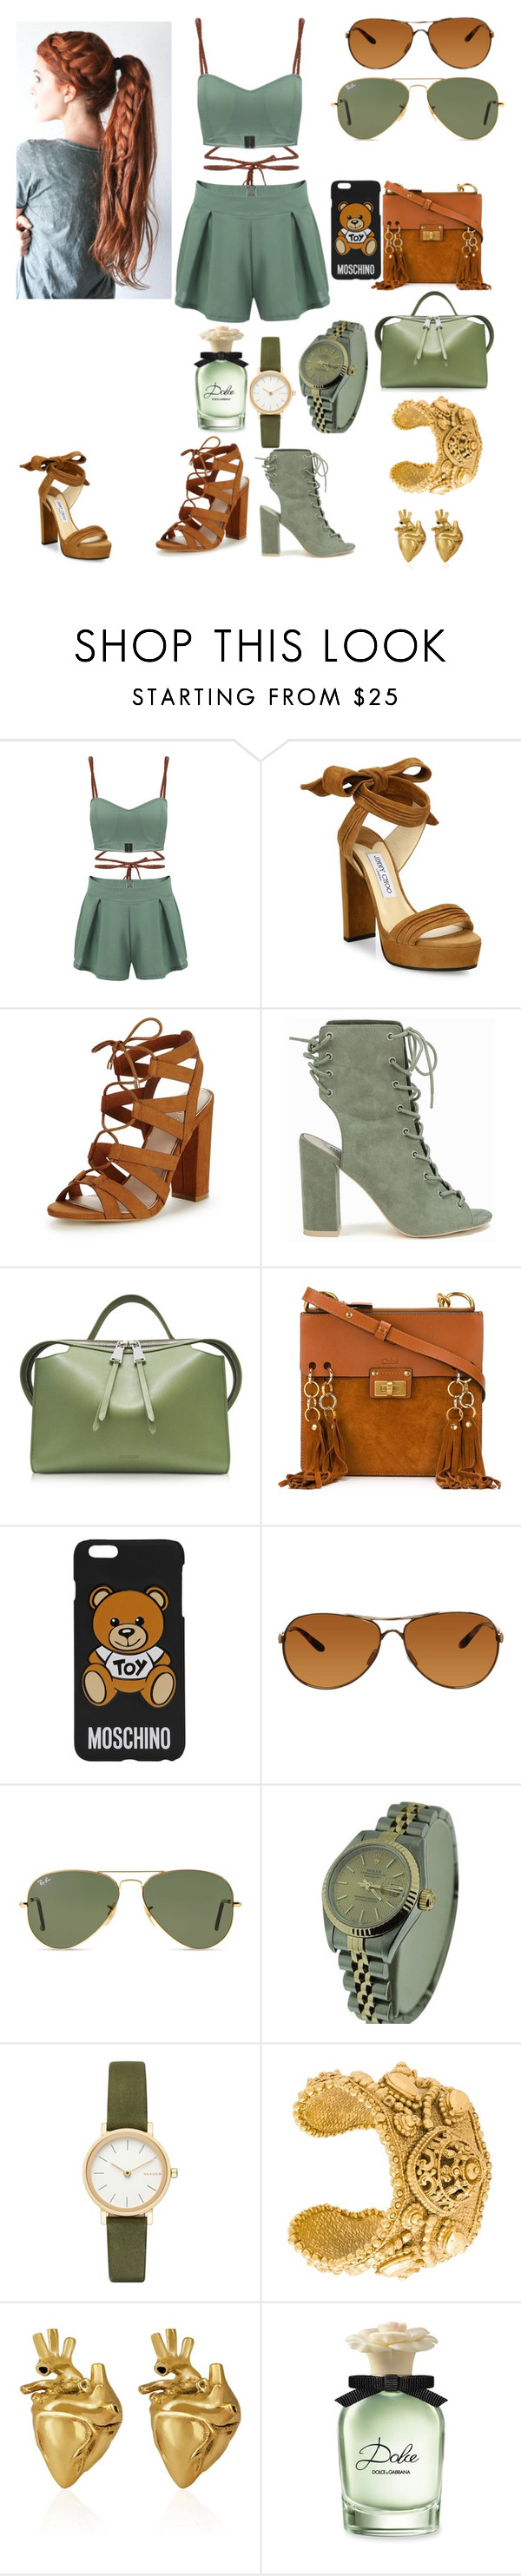 """""""Young fashion # 168"""" by demacracy ❤ liked on Polyvore featuring Jimmy Choo, Lipsy, Nly Shoes, Jil Sander, Chloé, Moschino, Oakley, Ray-Ban, Rolex and Skagen"""